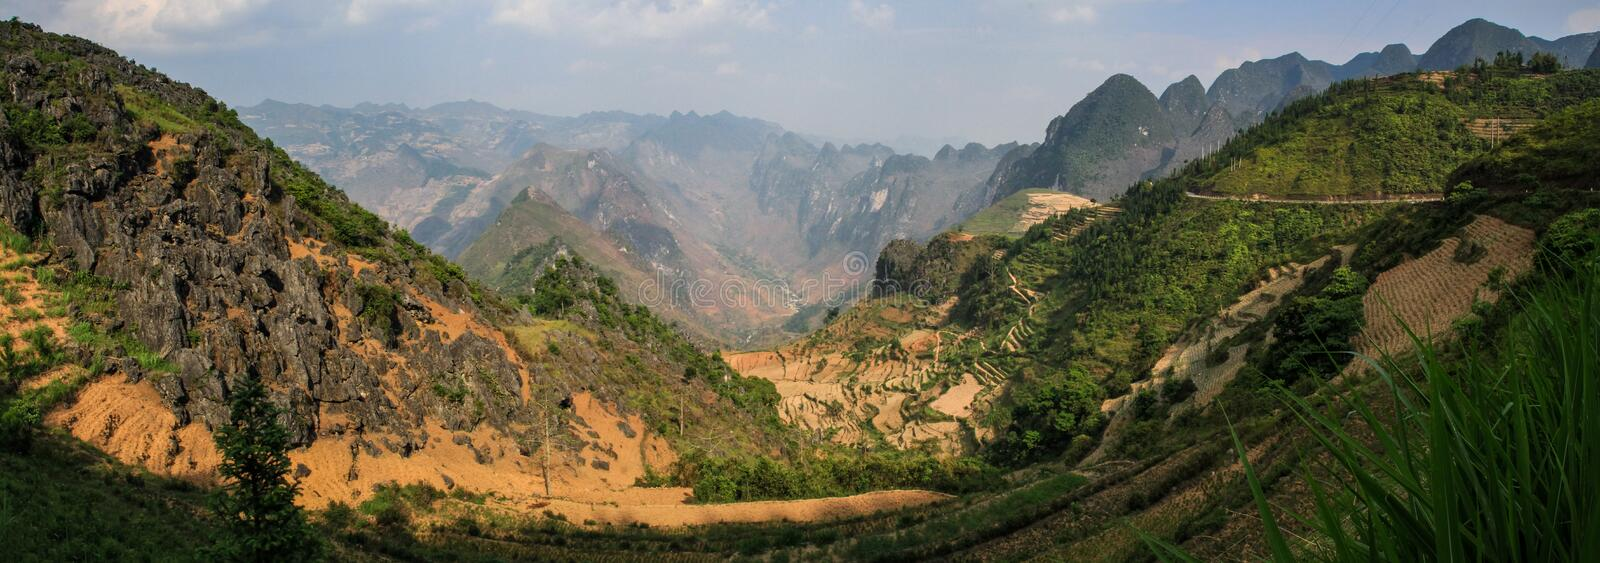 Panorama of the majestic karst mountains around Meo Vac, Ha Giang Province, Vietnam. Meo Vac is a small but charming district capital hemmed in by steep karst stock photos